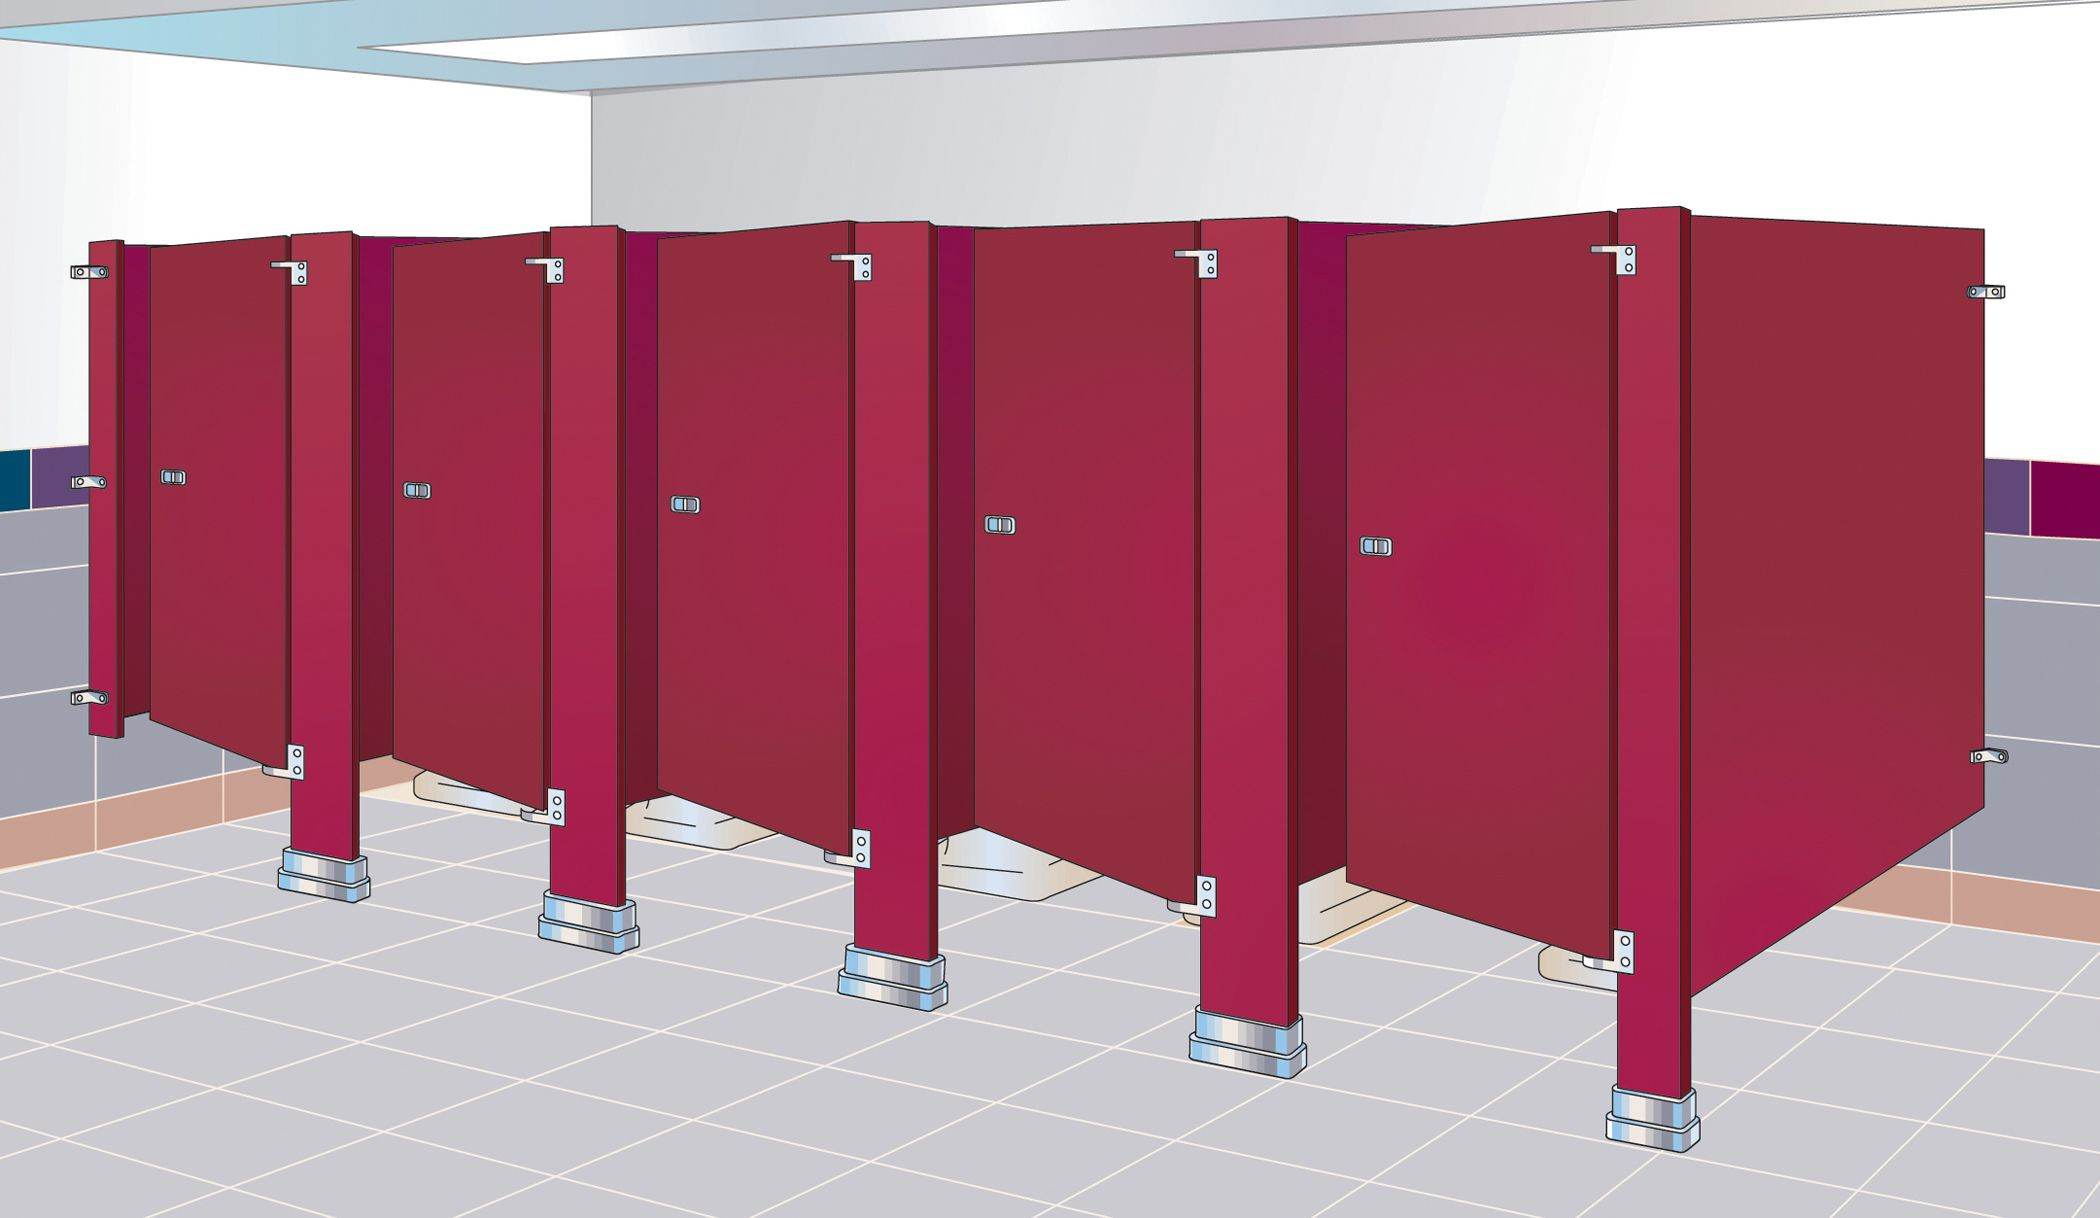 Commercial Bathroom Stall Property commercial toilet partitions for sale in austin texas | bathroom